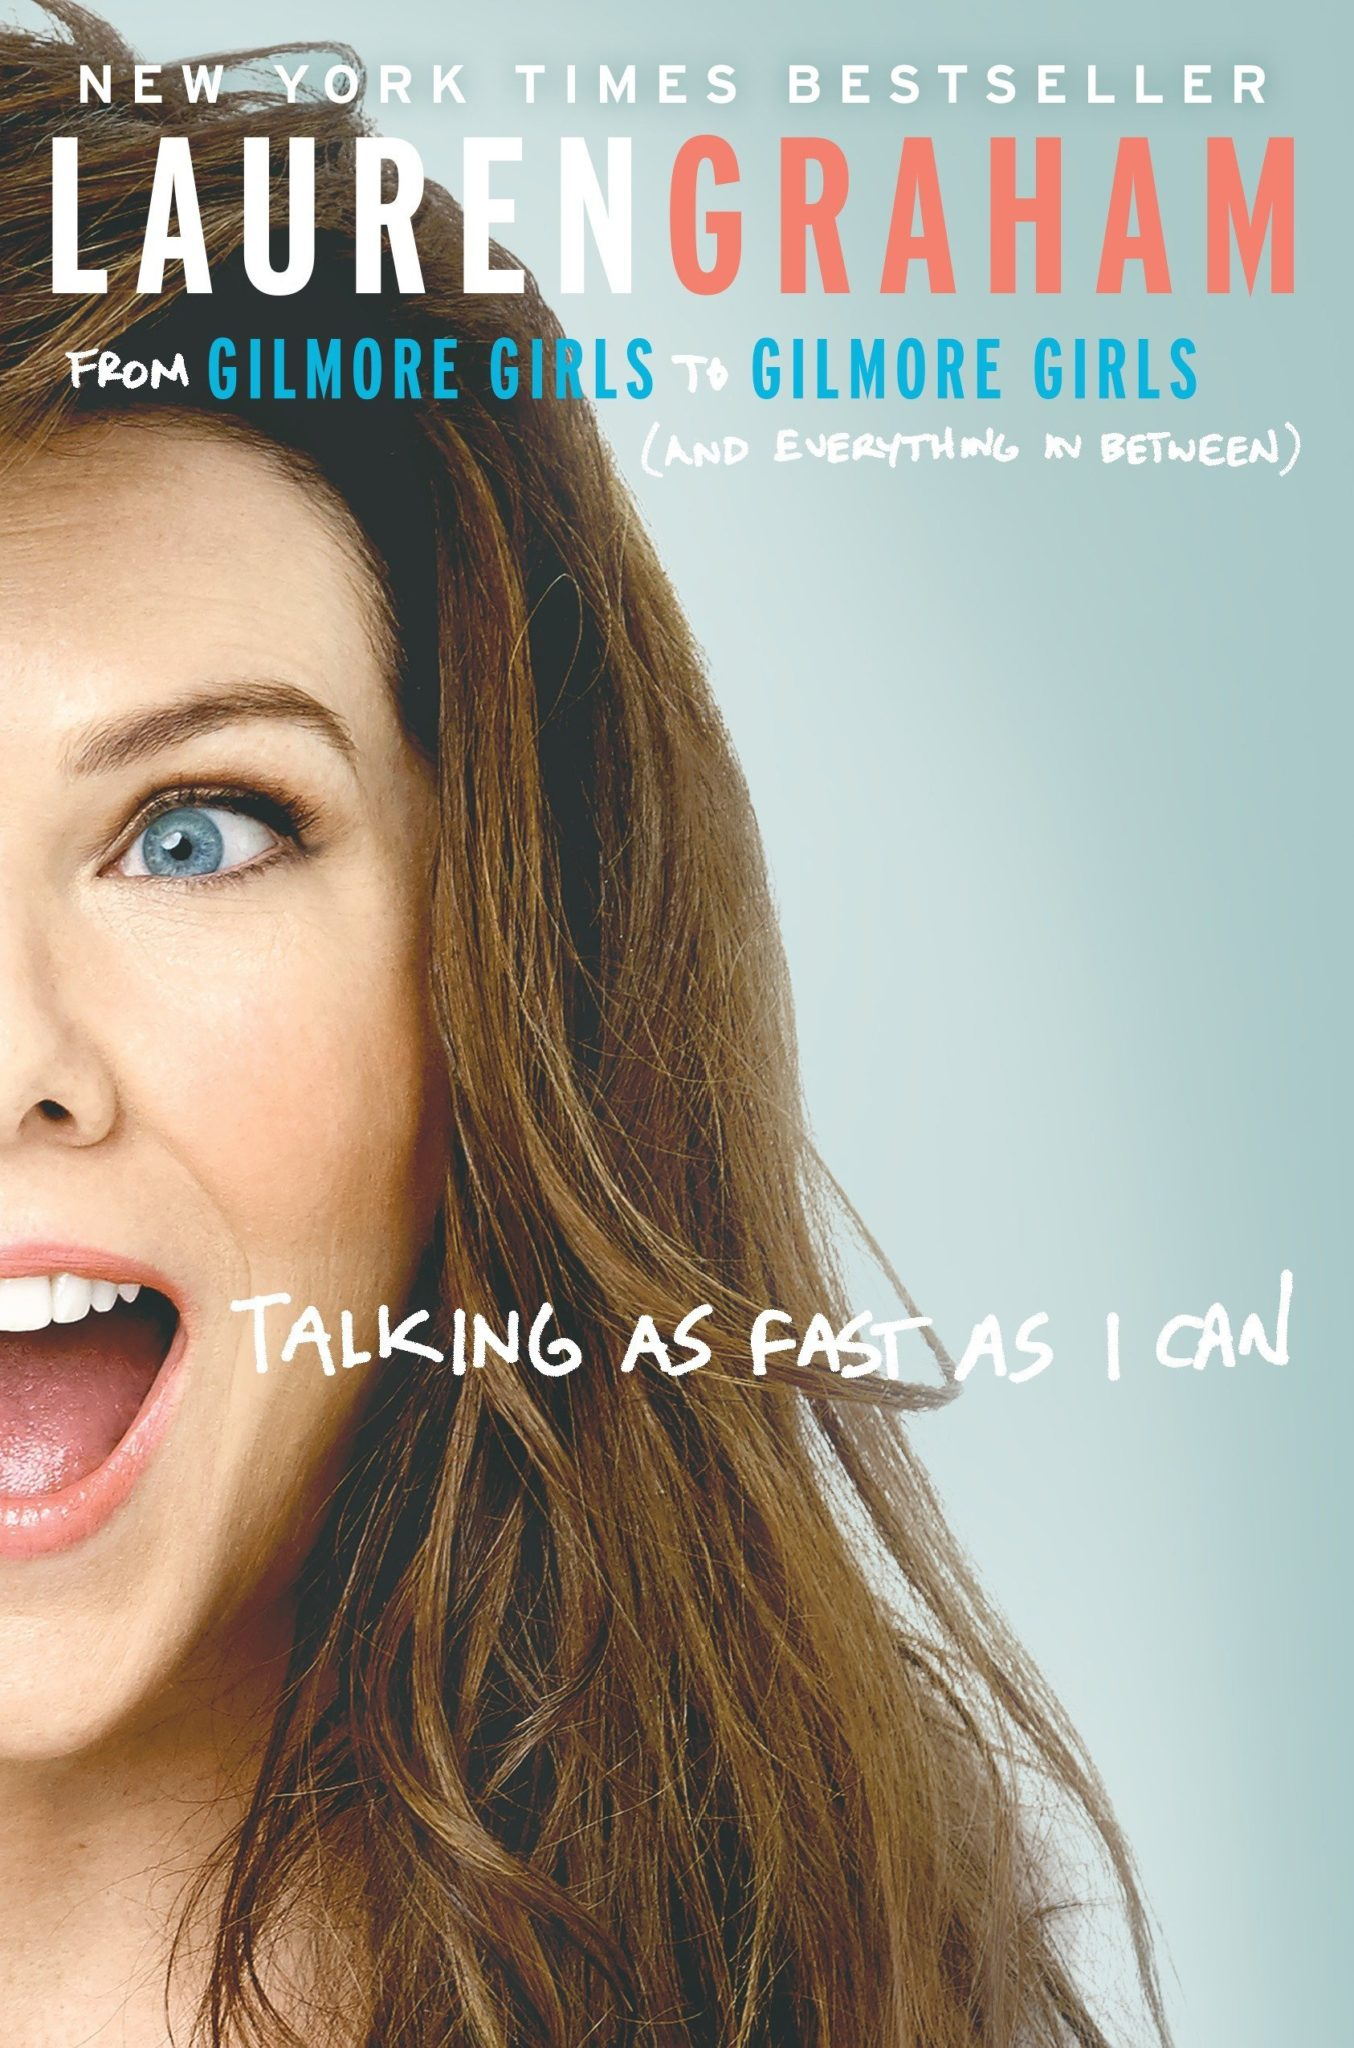 Books I Read in March 2020 - Talking as Fast as I Can - From Gilmore Girls to Gilmore Girls (and Everything in Between) by Lauren Graham | Rhyme & Reason